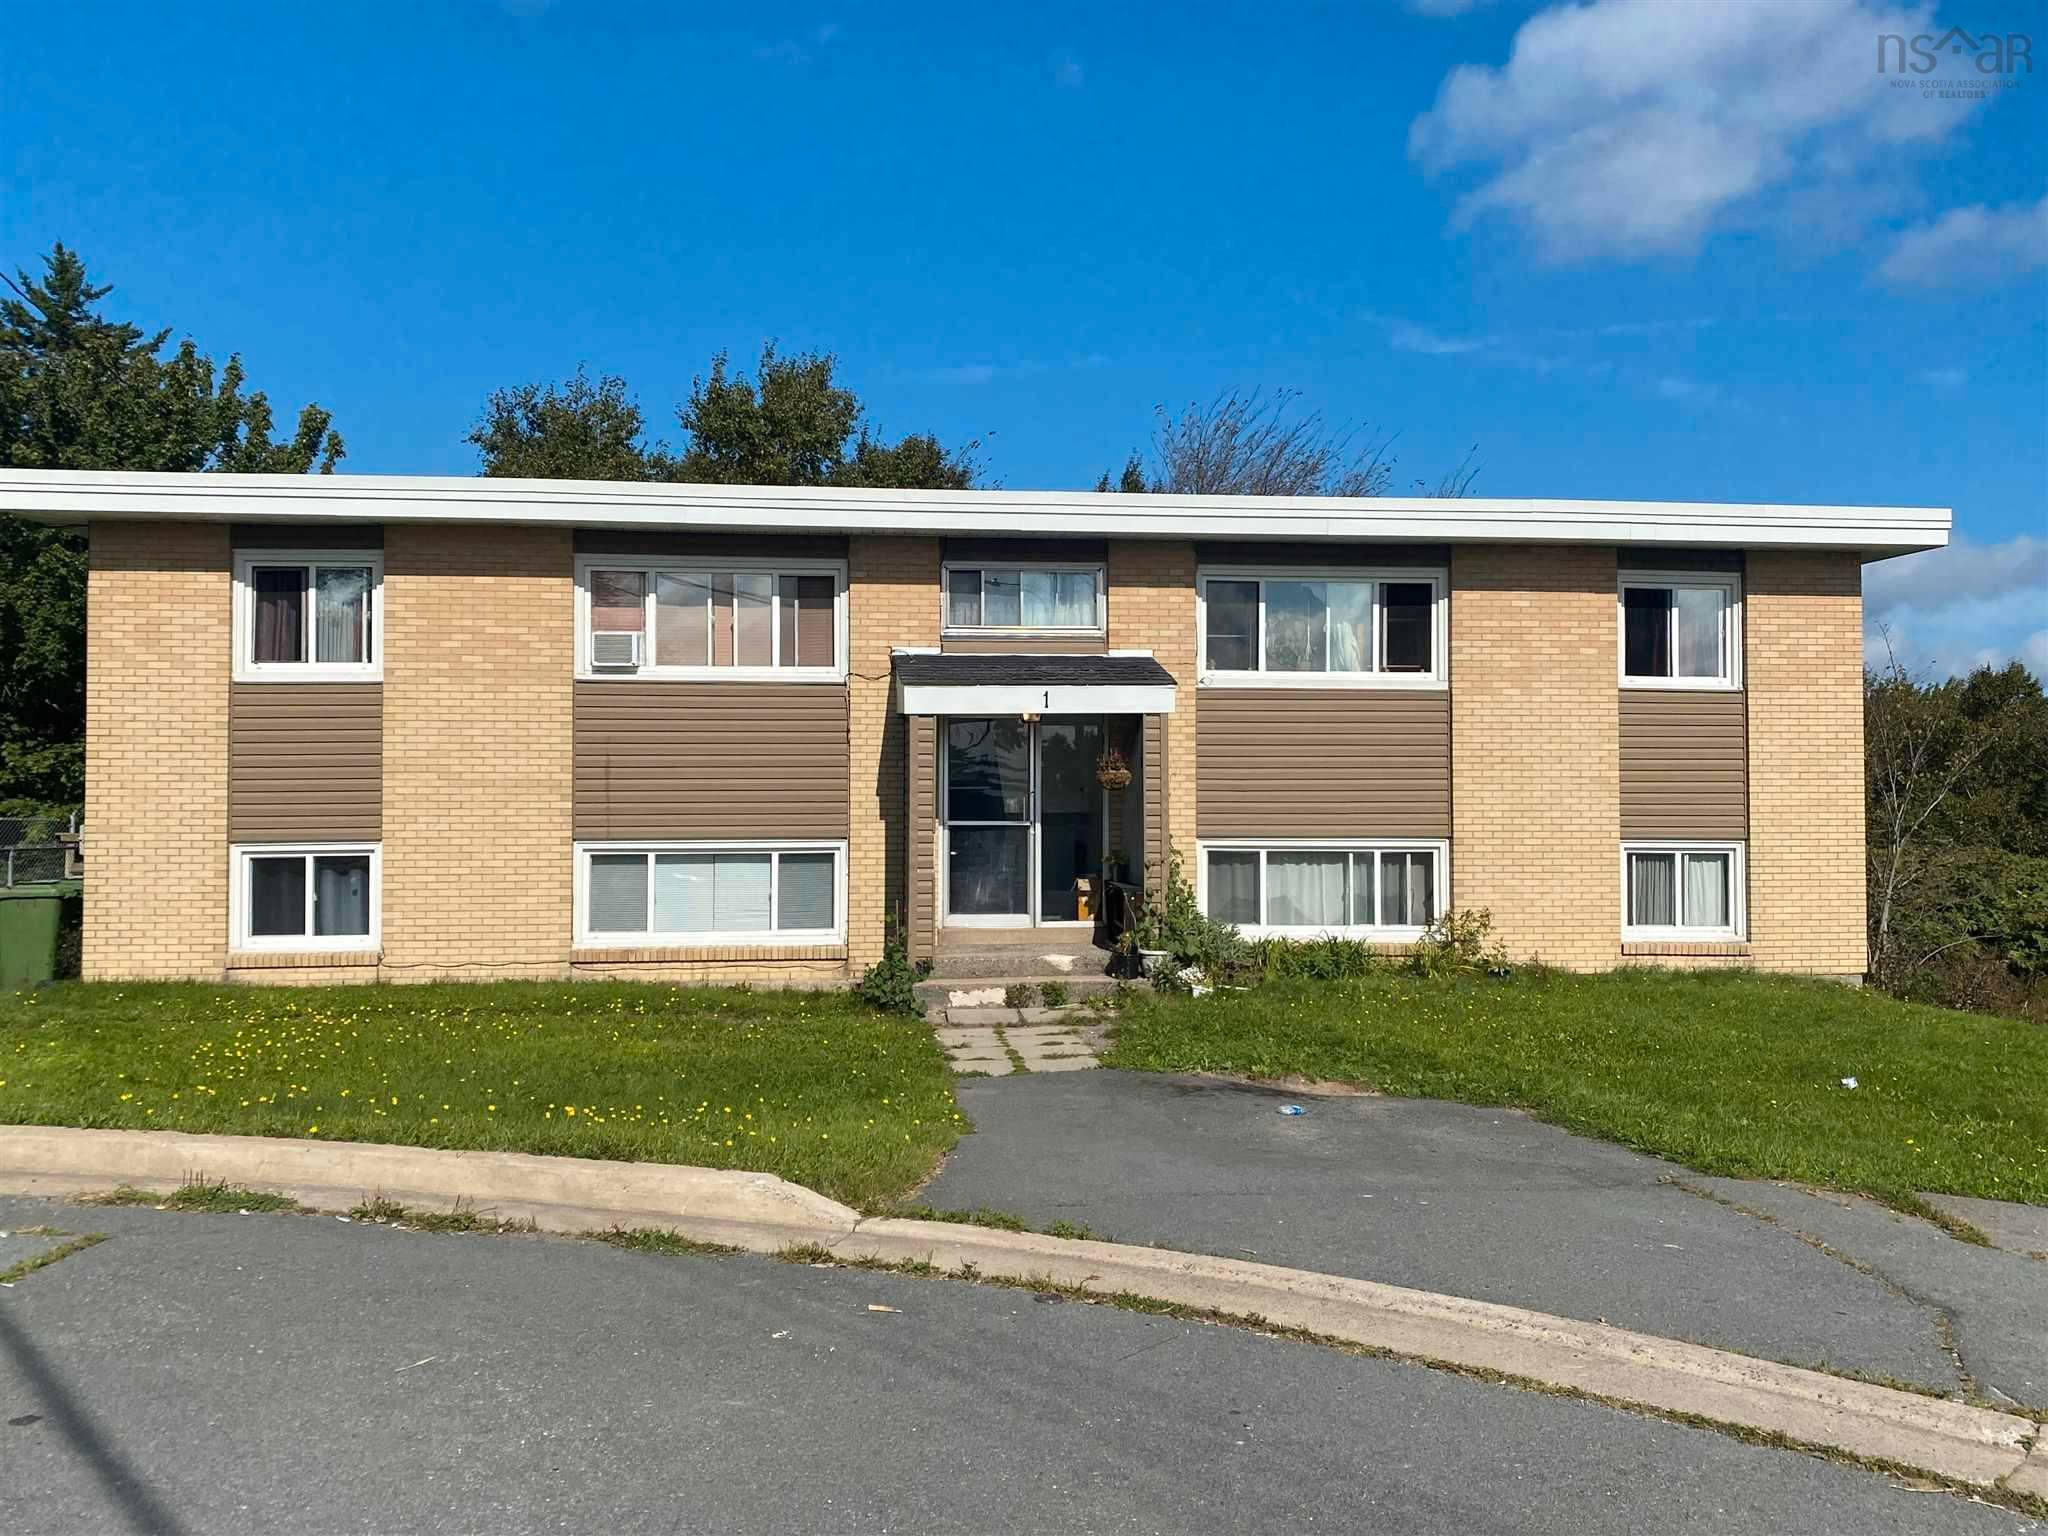 Main Photo: 1 Fiske Street in Fairview: 6-Fairview Multi-Family for sale (Halifax-Dartmouth)  : MLS®# 202124665